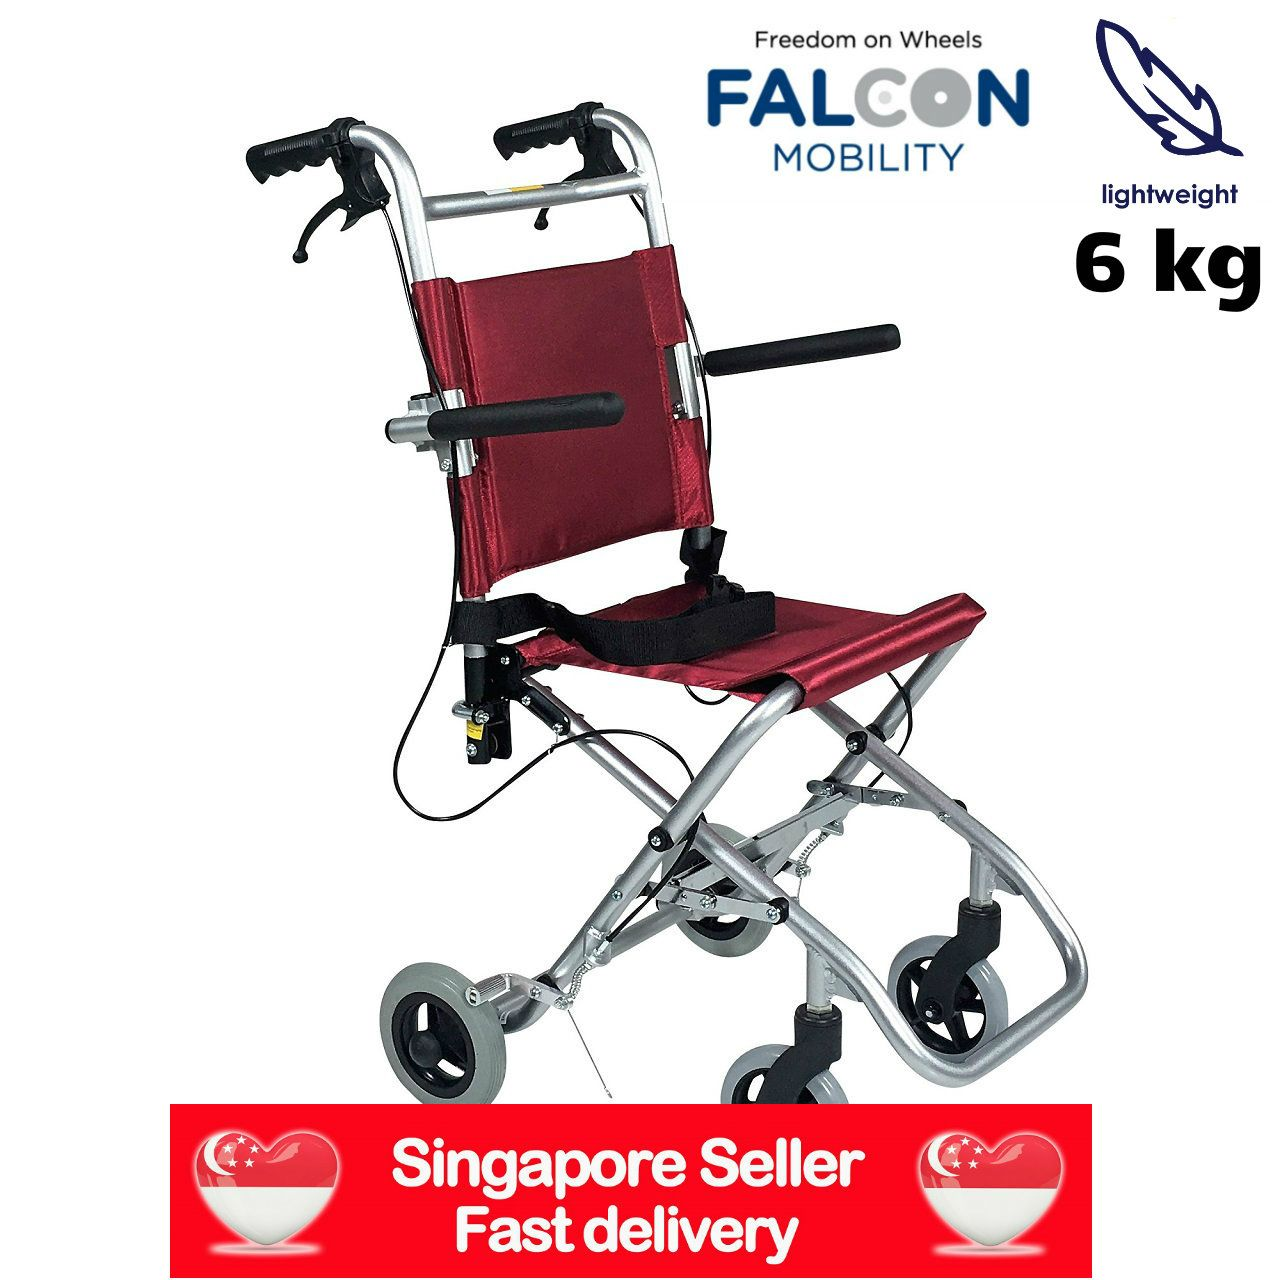 Lightweight aluminium wheelchairs for as low as 49.75